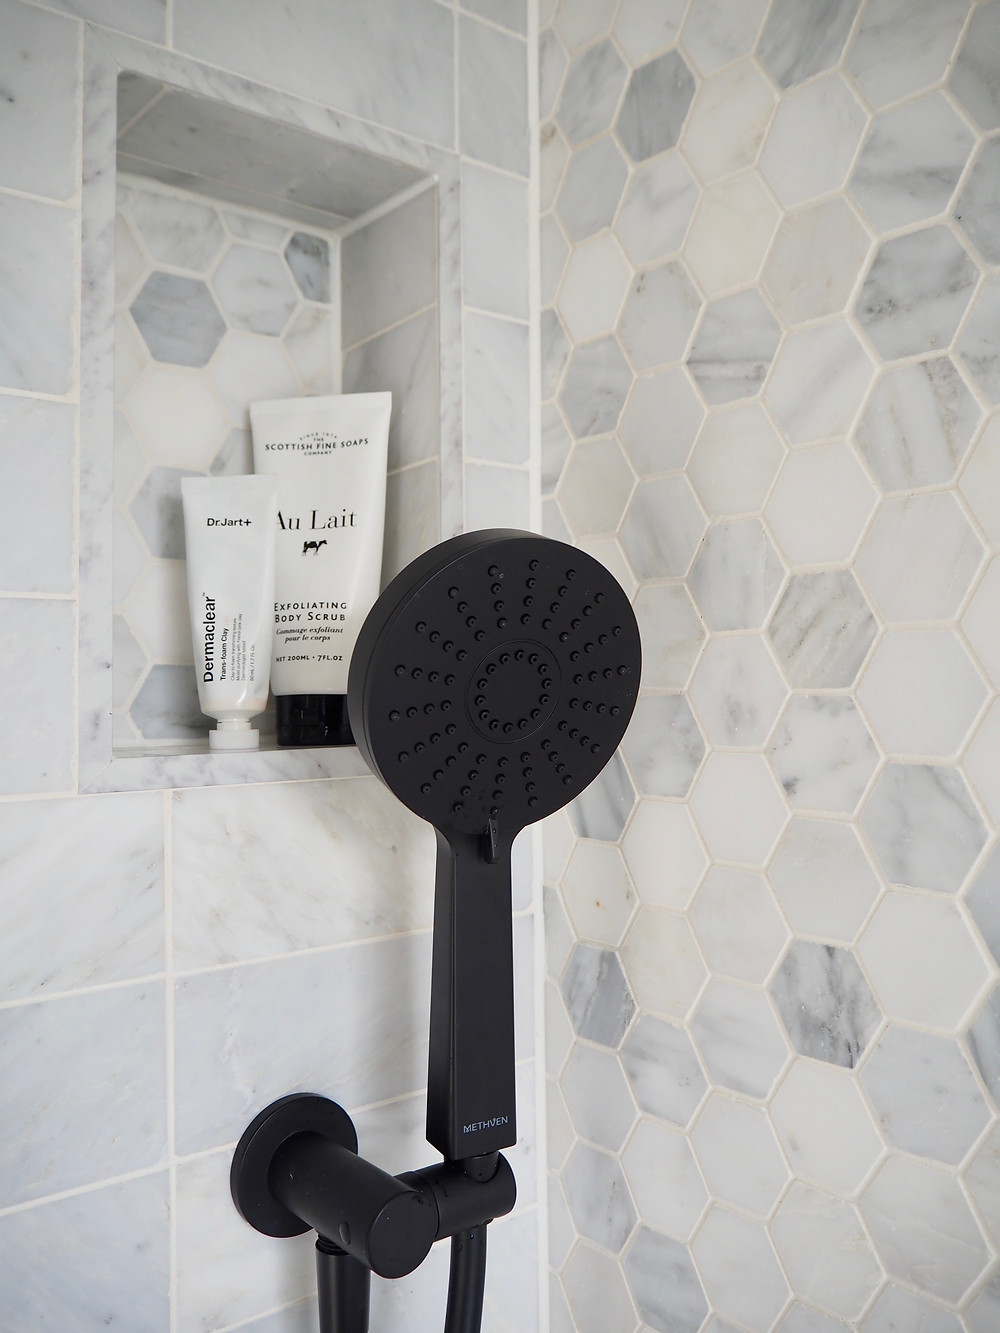 Methven Matt Black shower hand set and marble hexagon tiles from Mandarin Stone